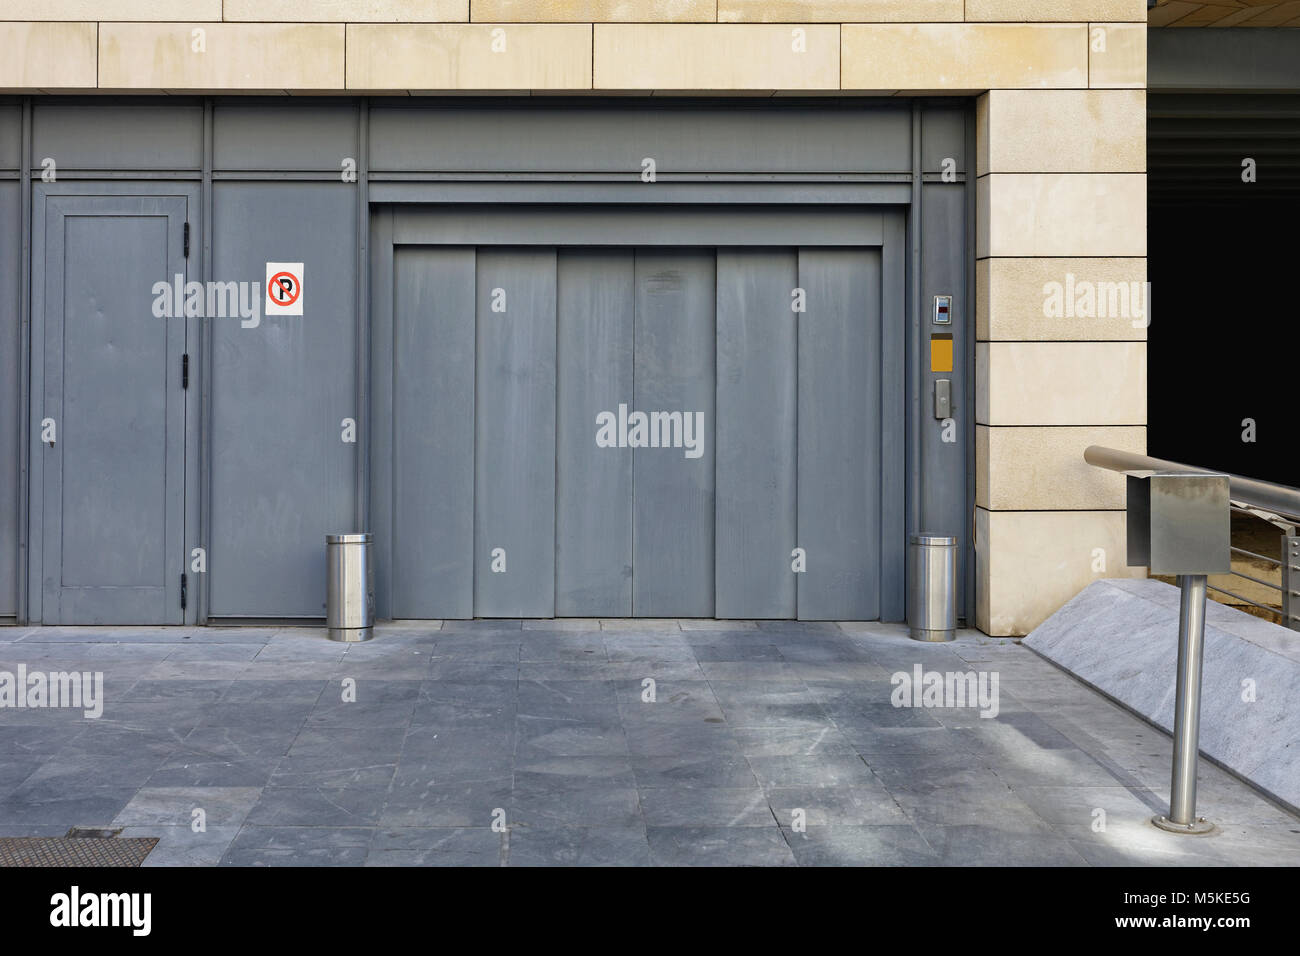 In Ground Garage Car Lift Elevator Lift Entrance To Underground Car Garage Stock Photo